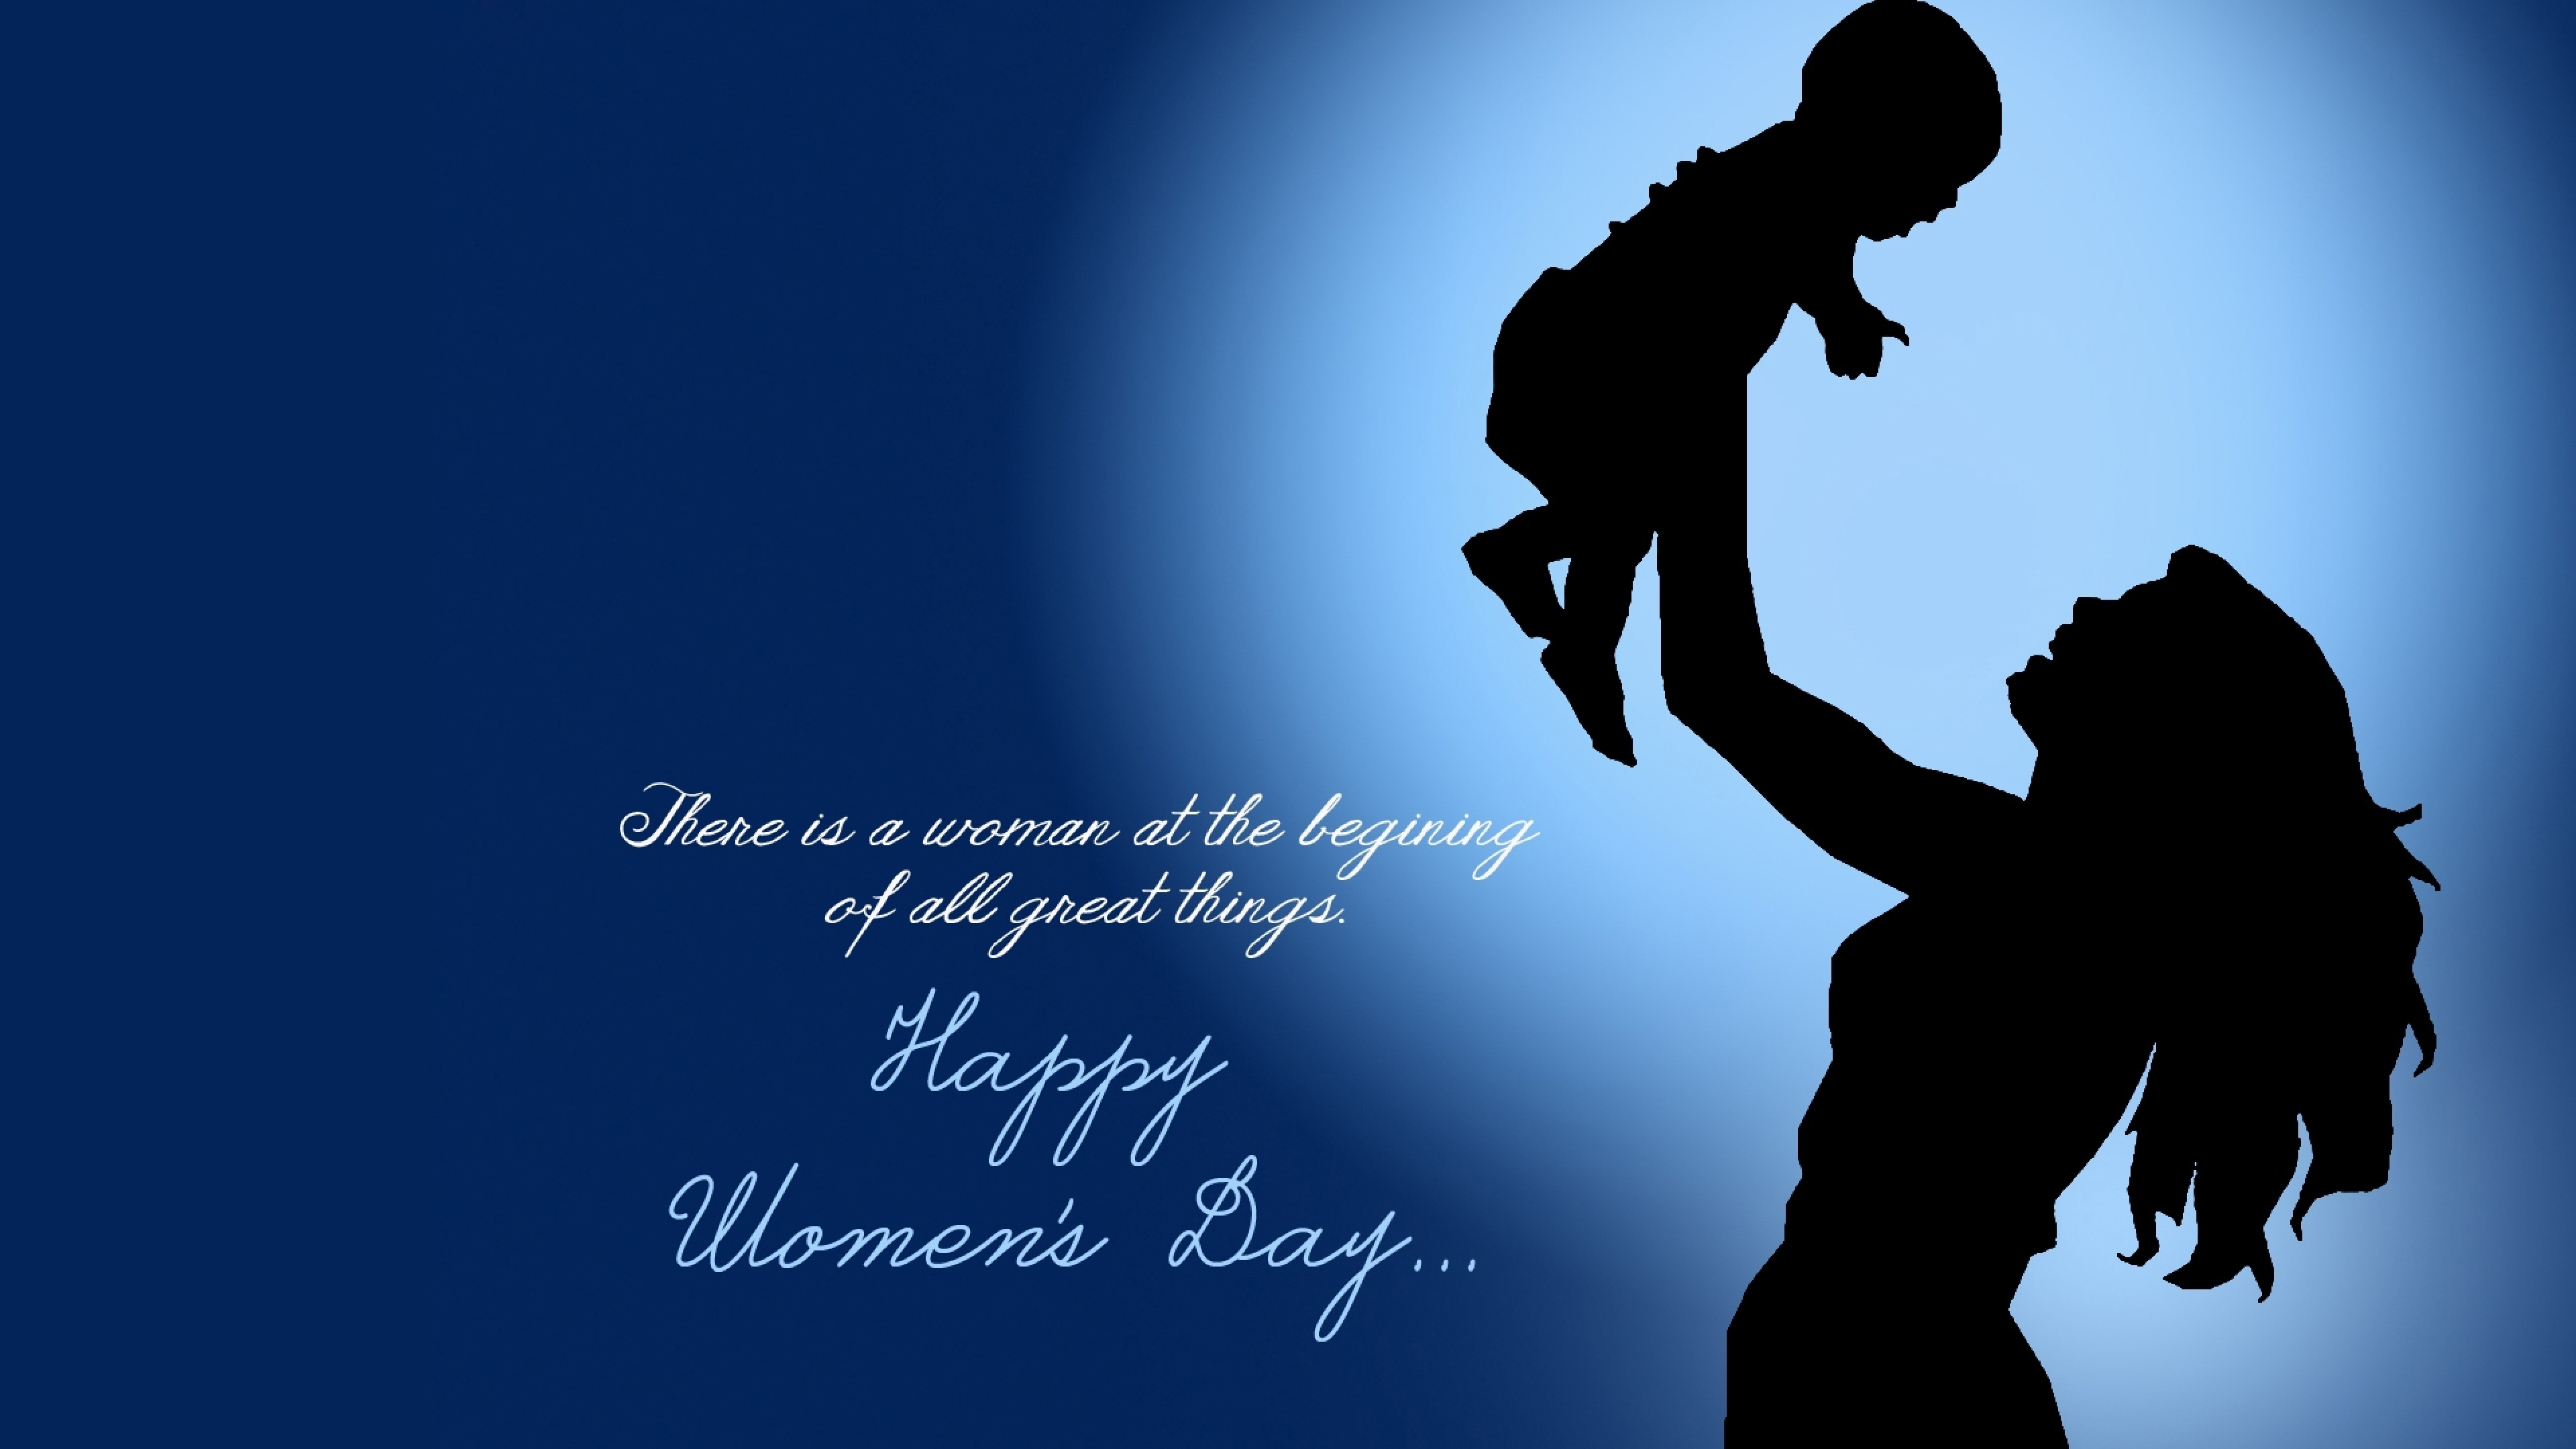 Happy-Womens-Day-Greetings-HD-Wallpapers